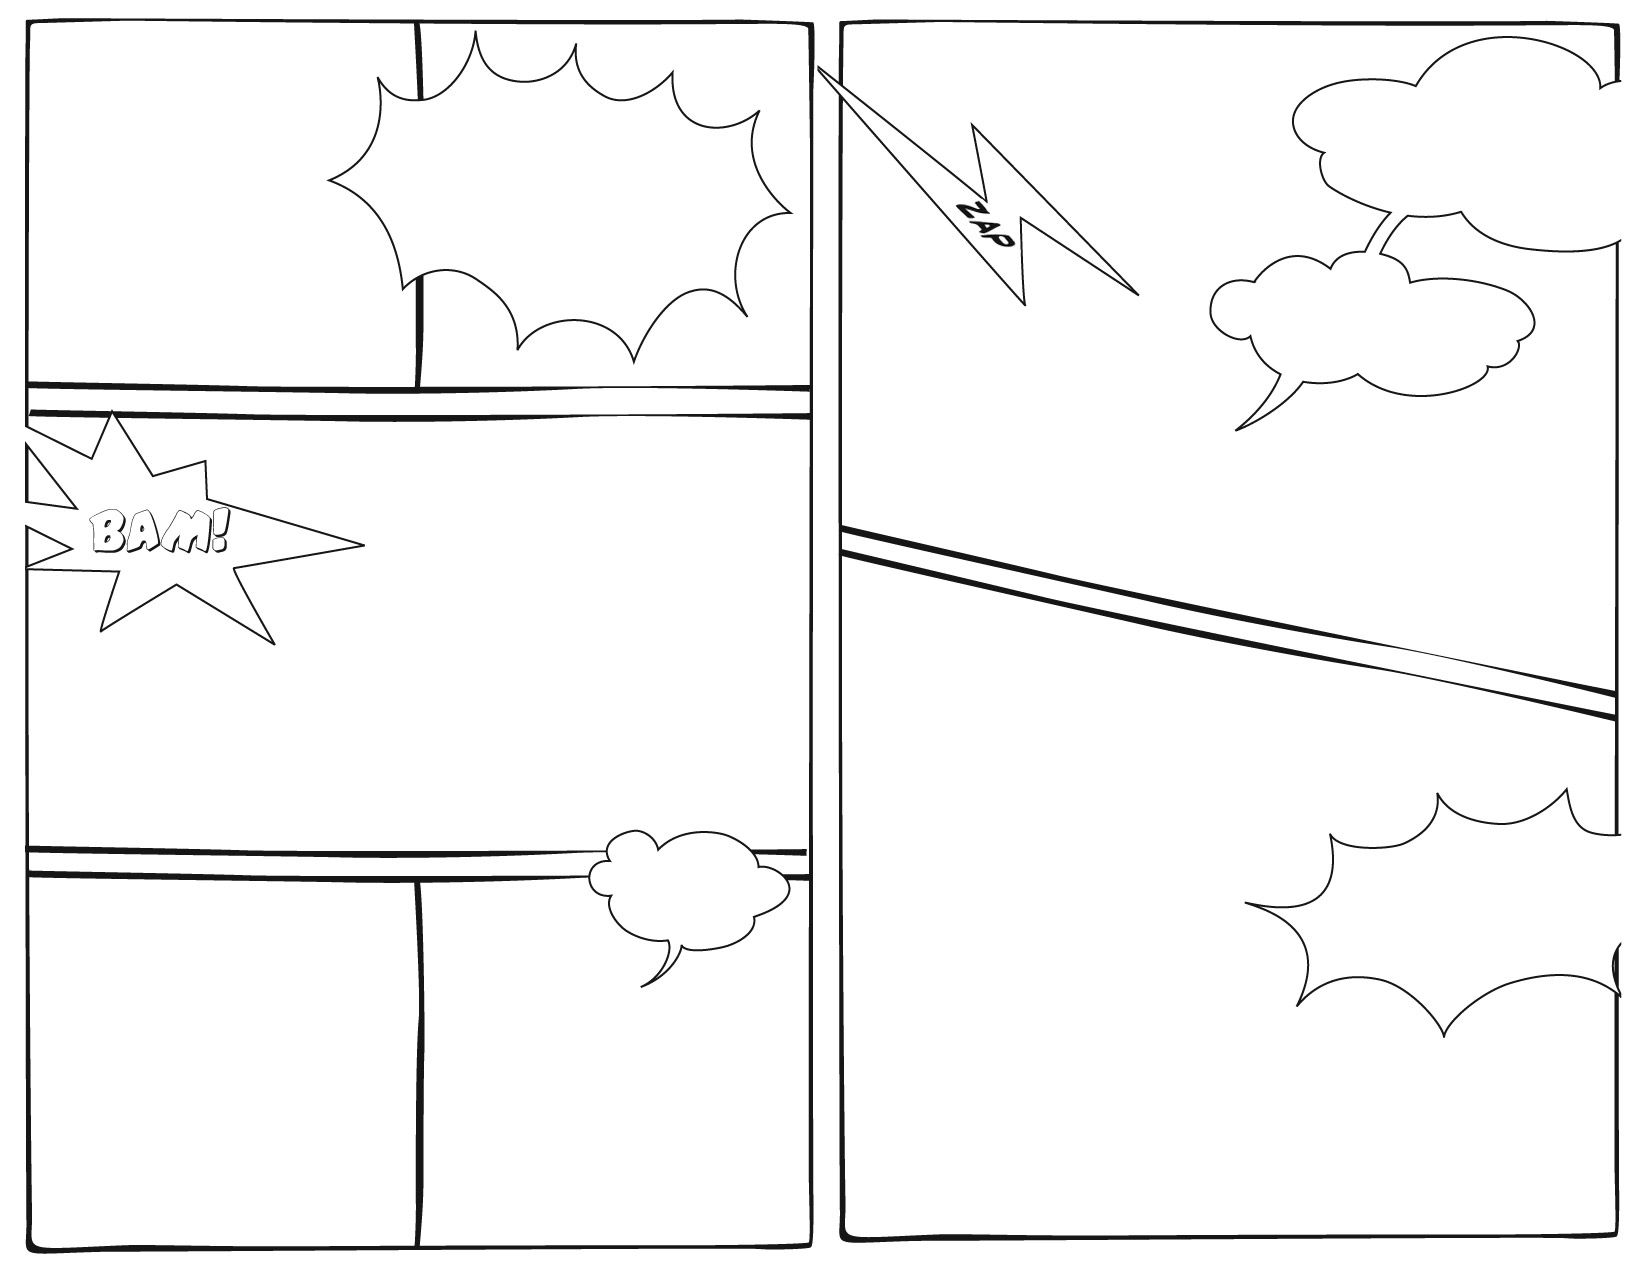 Comic Book Character Design Template : The blank is a fictional character that appears in comic